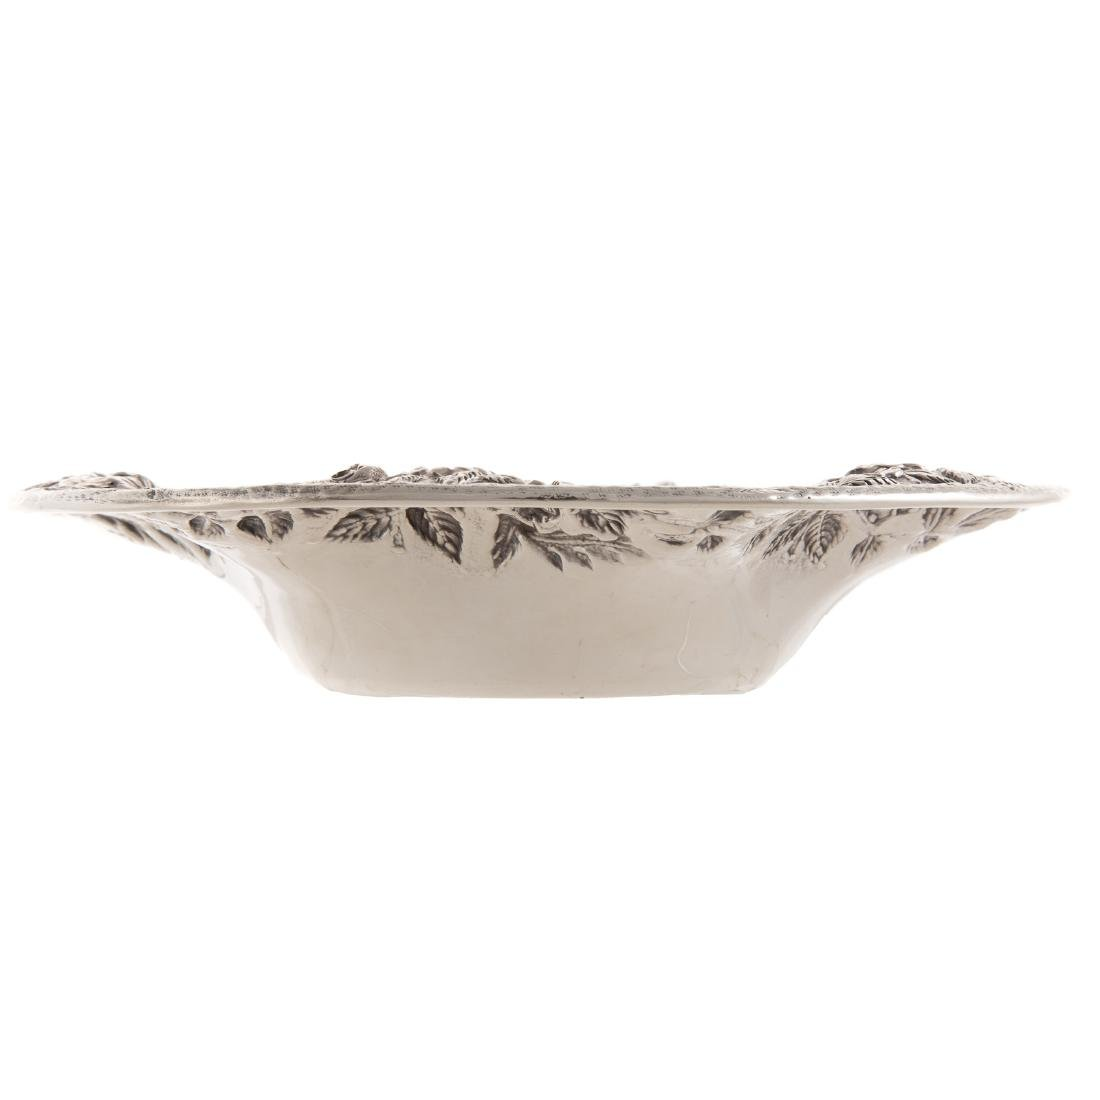 Kirk repousse sterling vegetable bowl - 2